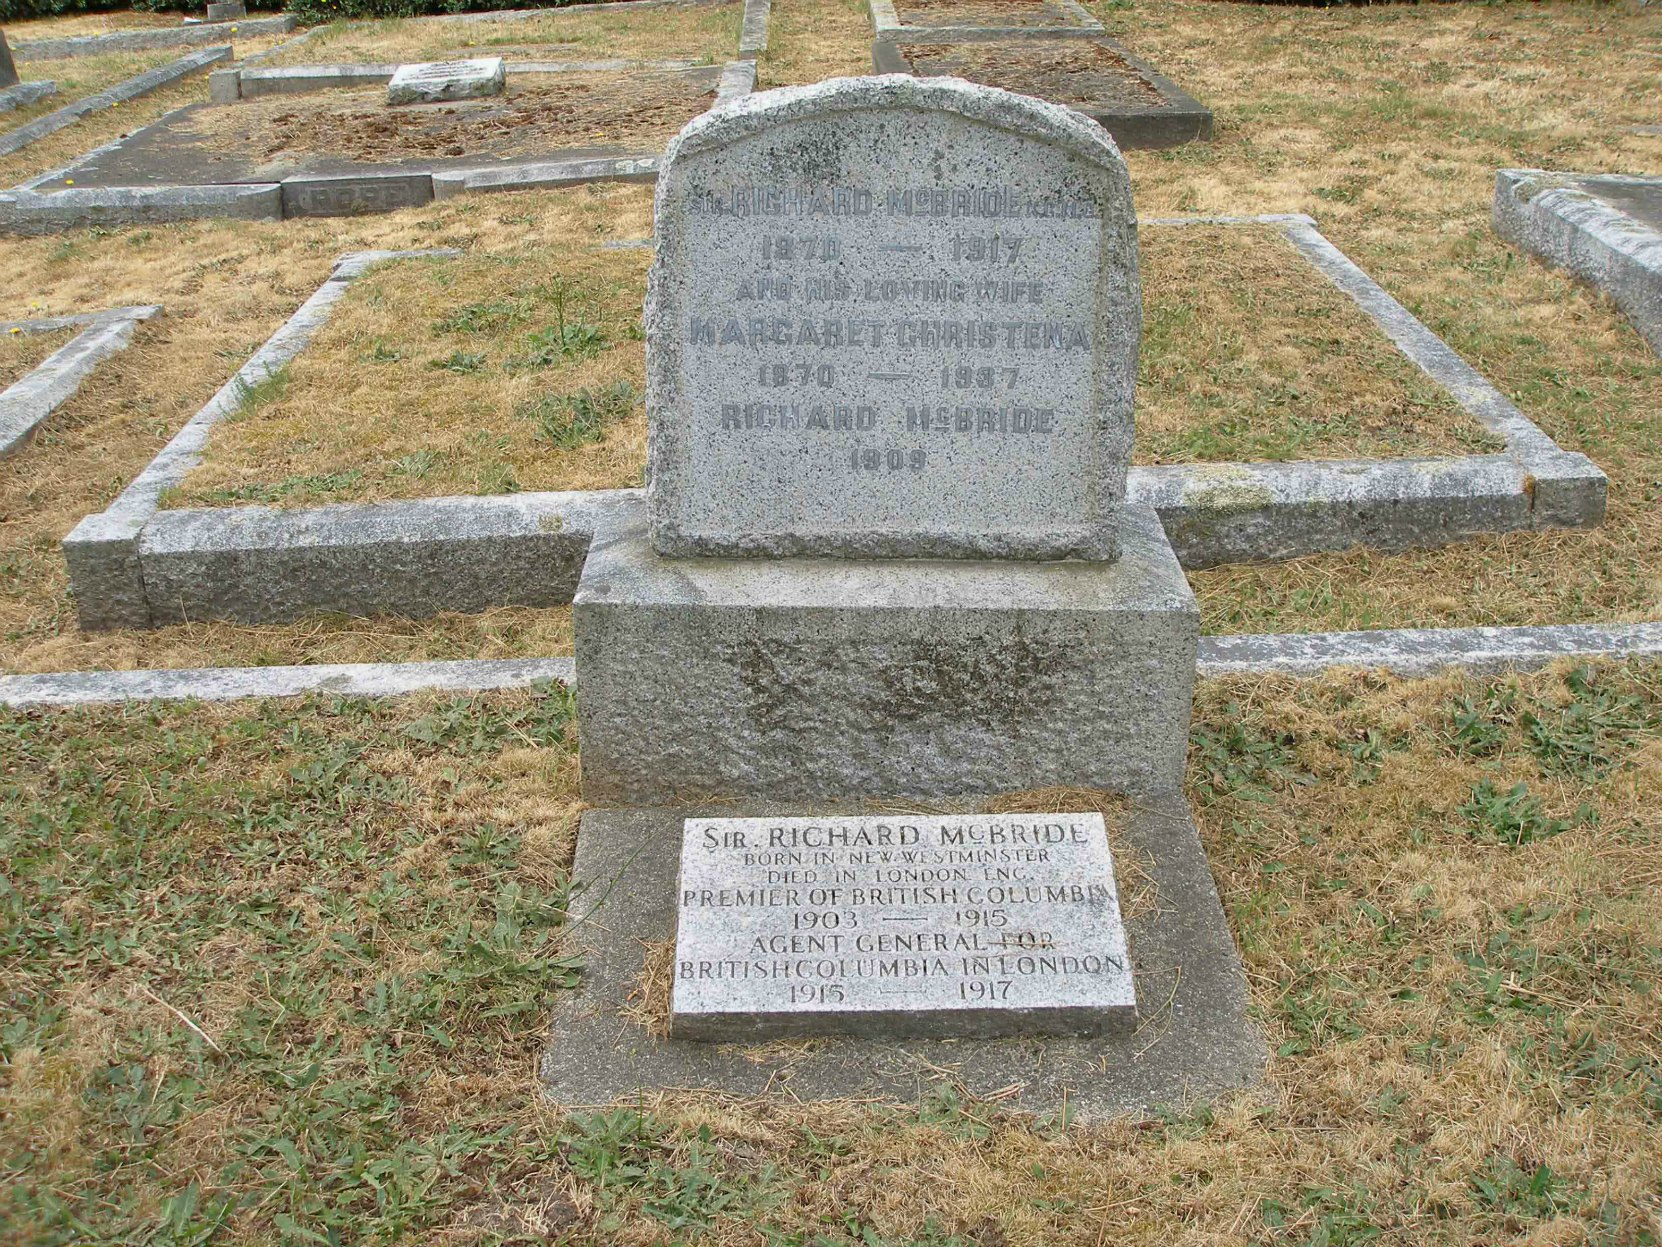 Sir Richard McBride )1870-1917), headstone, Ross Bay Cemetery, Victoria, B.C. (photo by Temple Lodge No. 33 Historian)